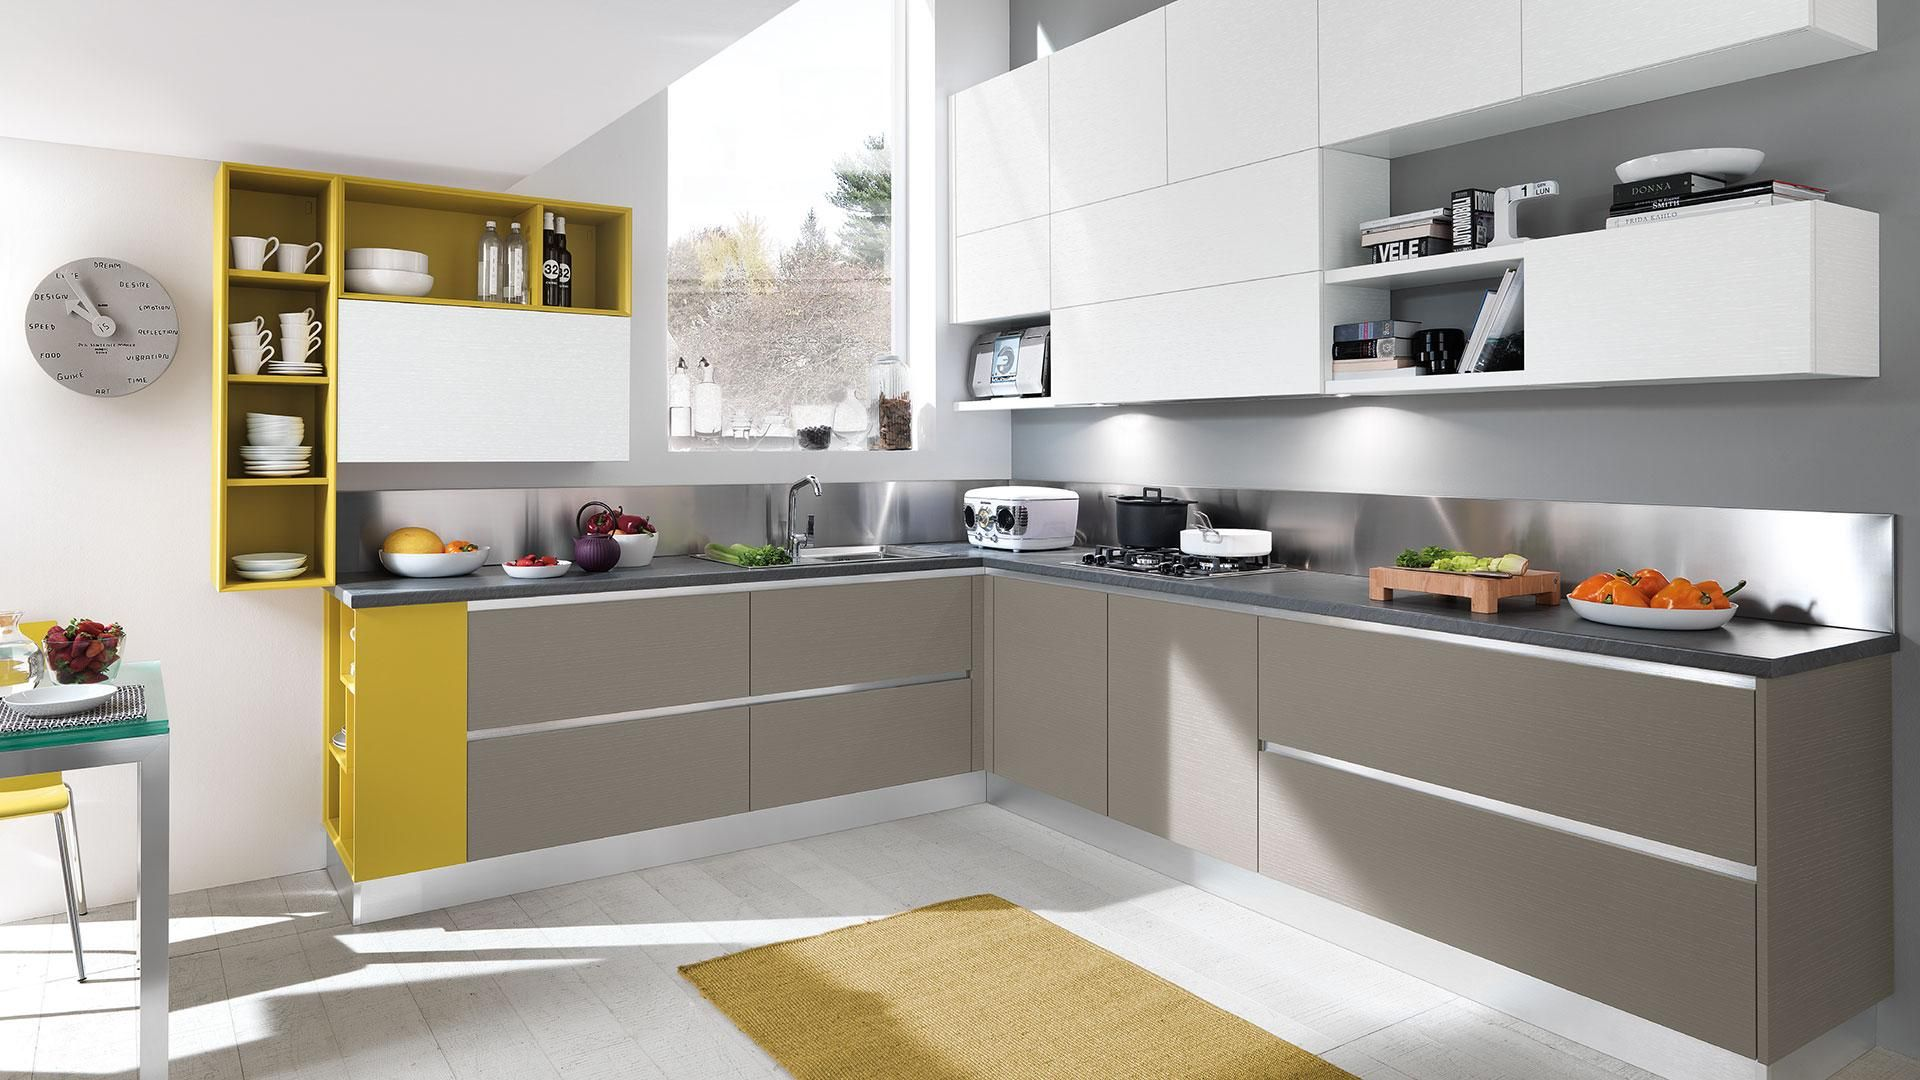 Cucine Lube | Cucine Lube | Pinterest | Hidden kitchen, Interiors ...